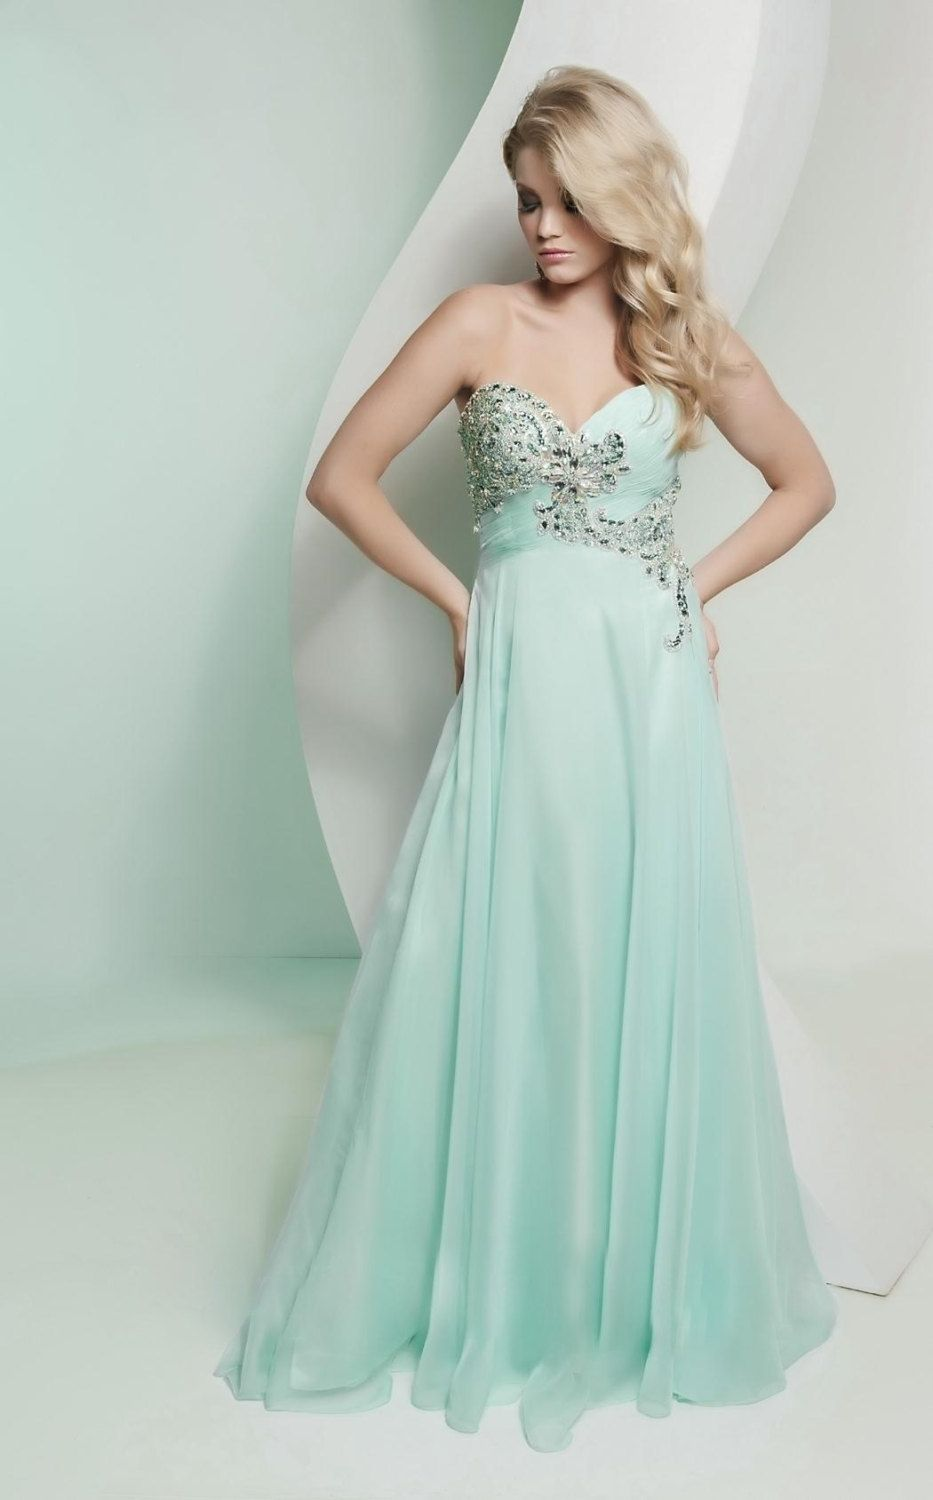 Etsy strapless shimmer mint bridesmaid dresses